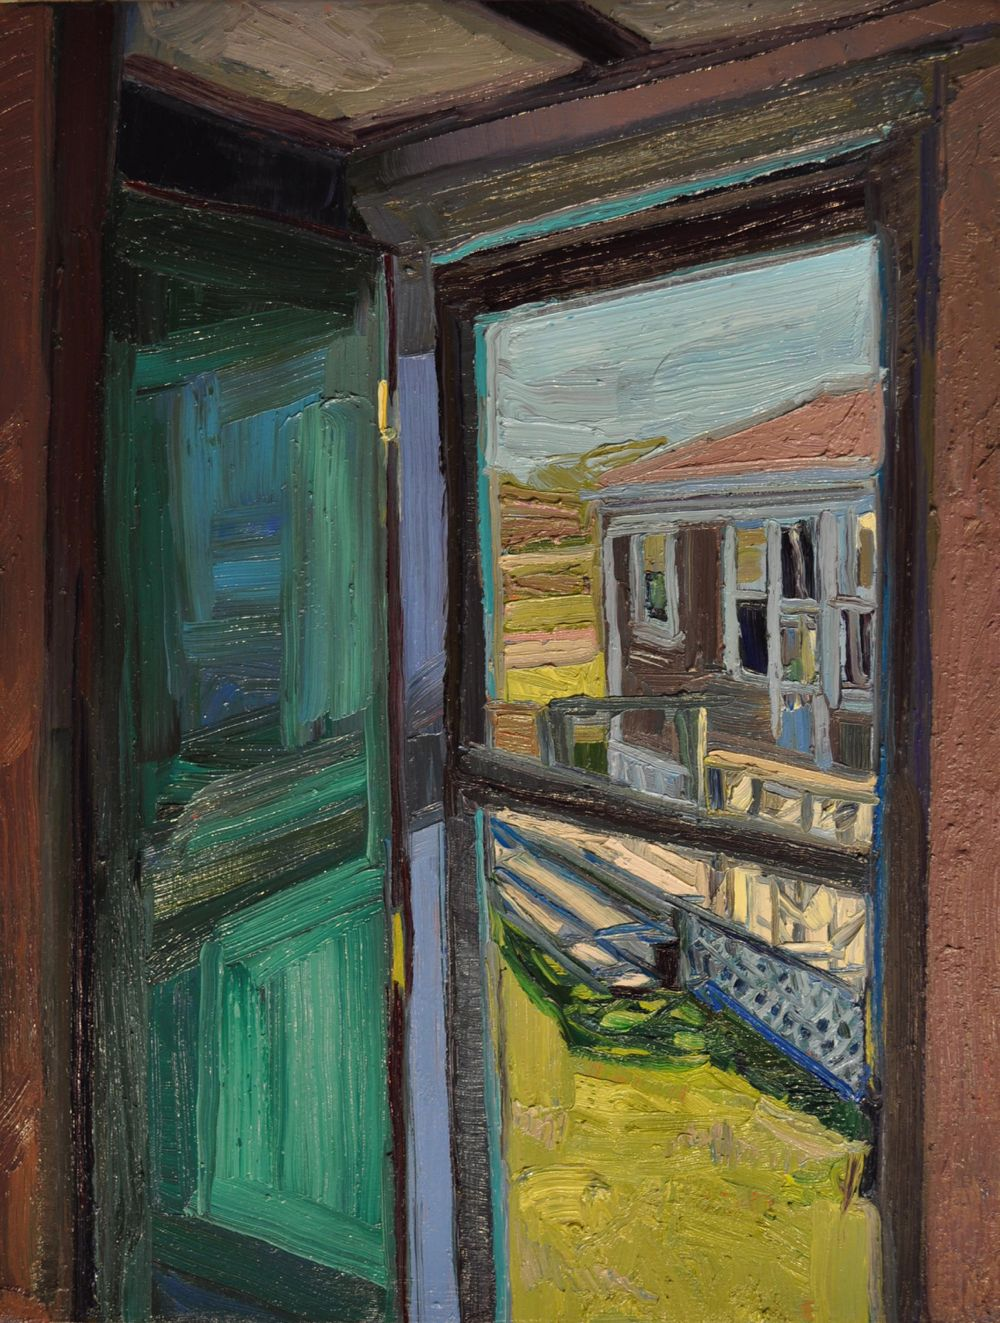 An empty cabin - oil on canvas, 26 x 20 inches, 66.1 x 50.8 cm by Julia Vandepolder